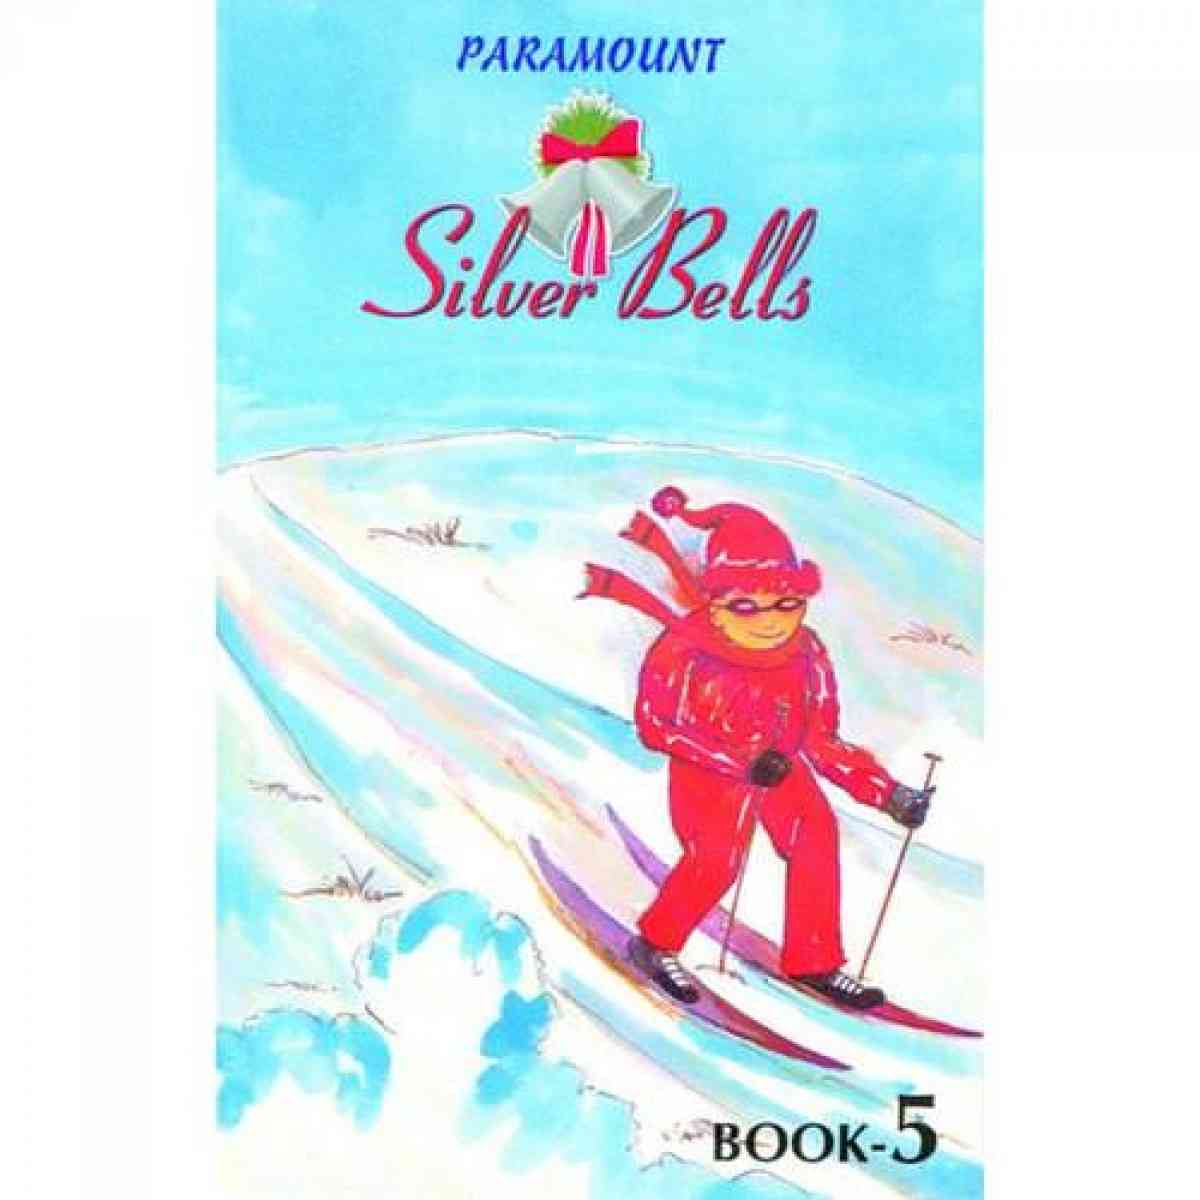 Paramount Silver Bells: Book 5